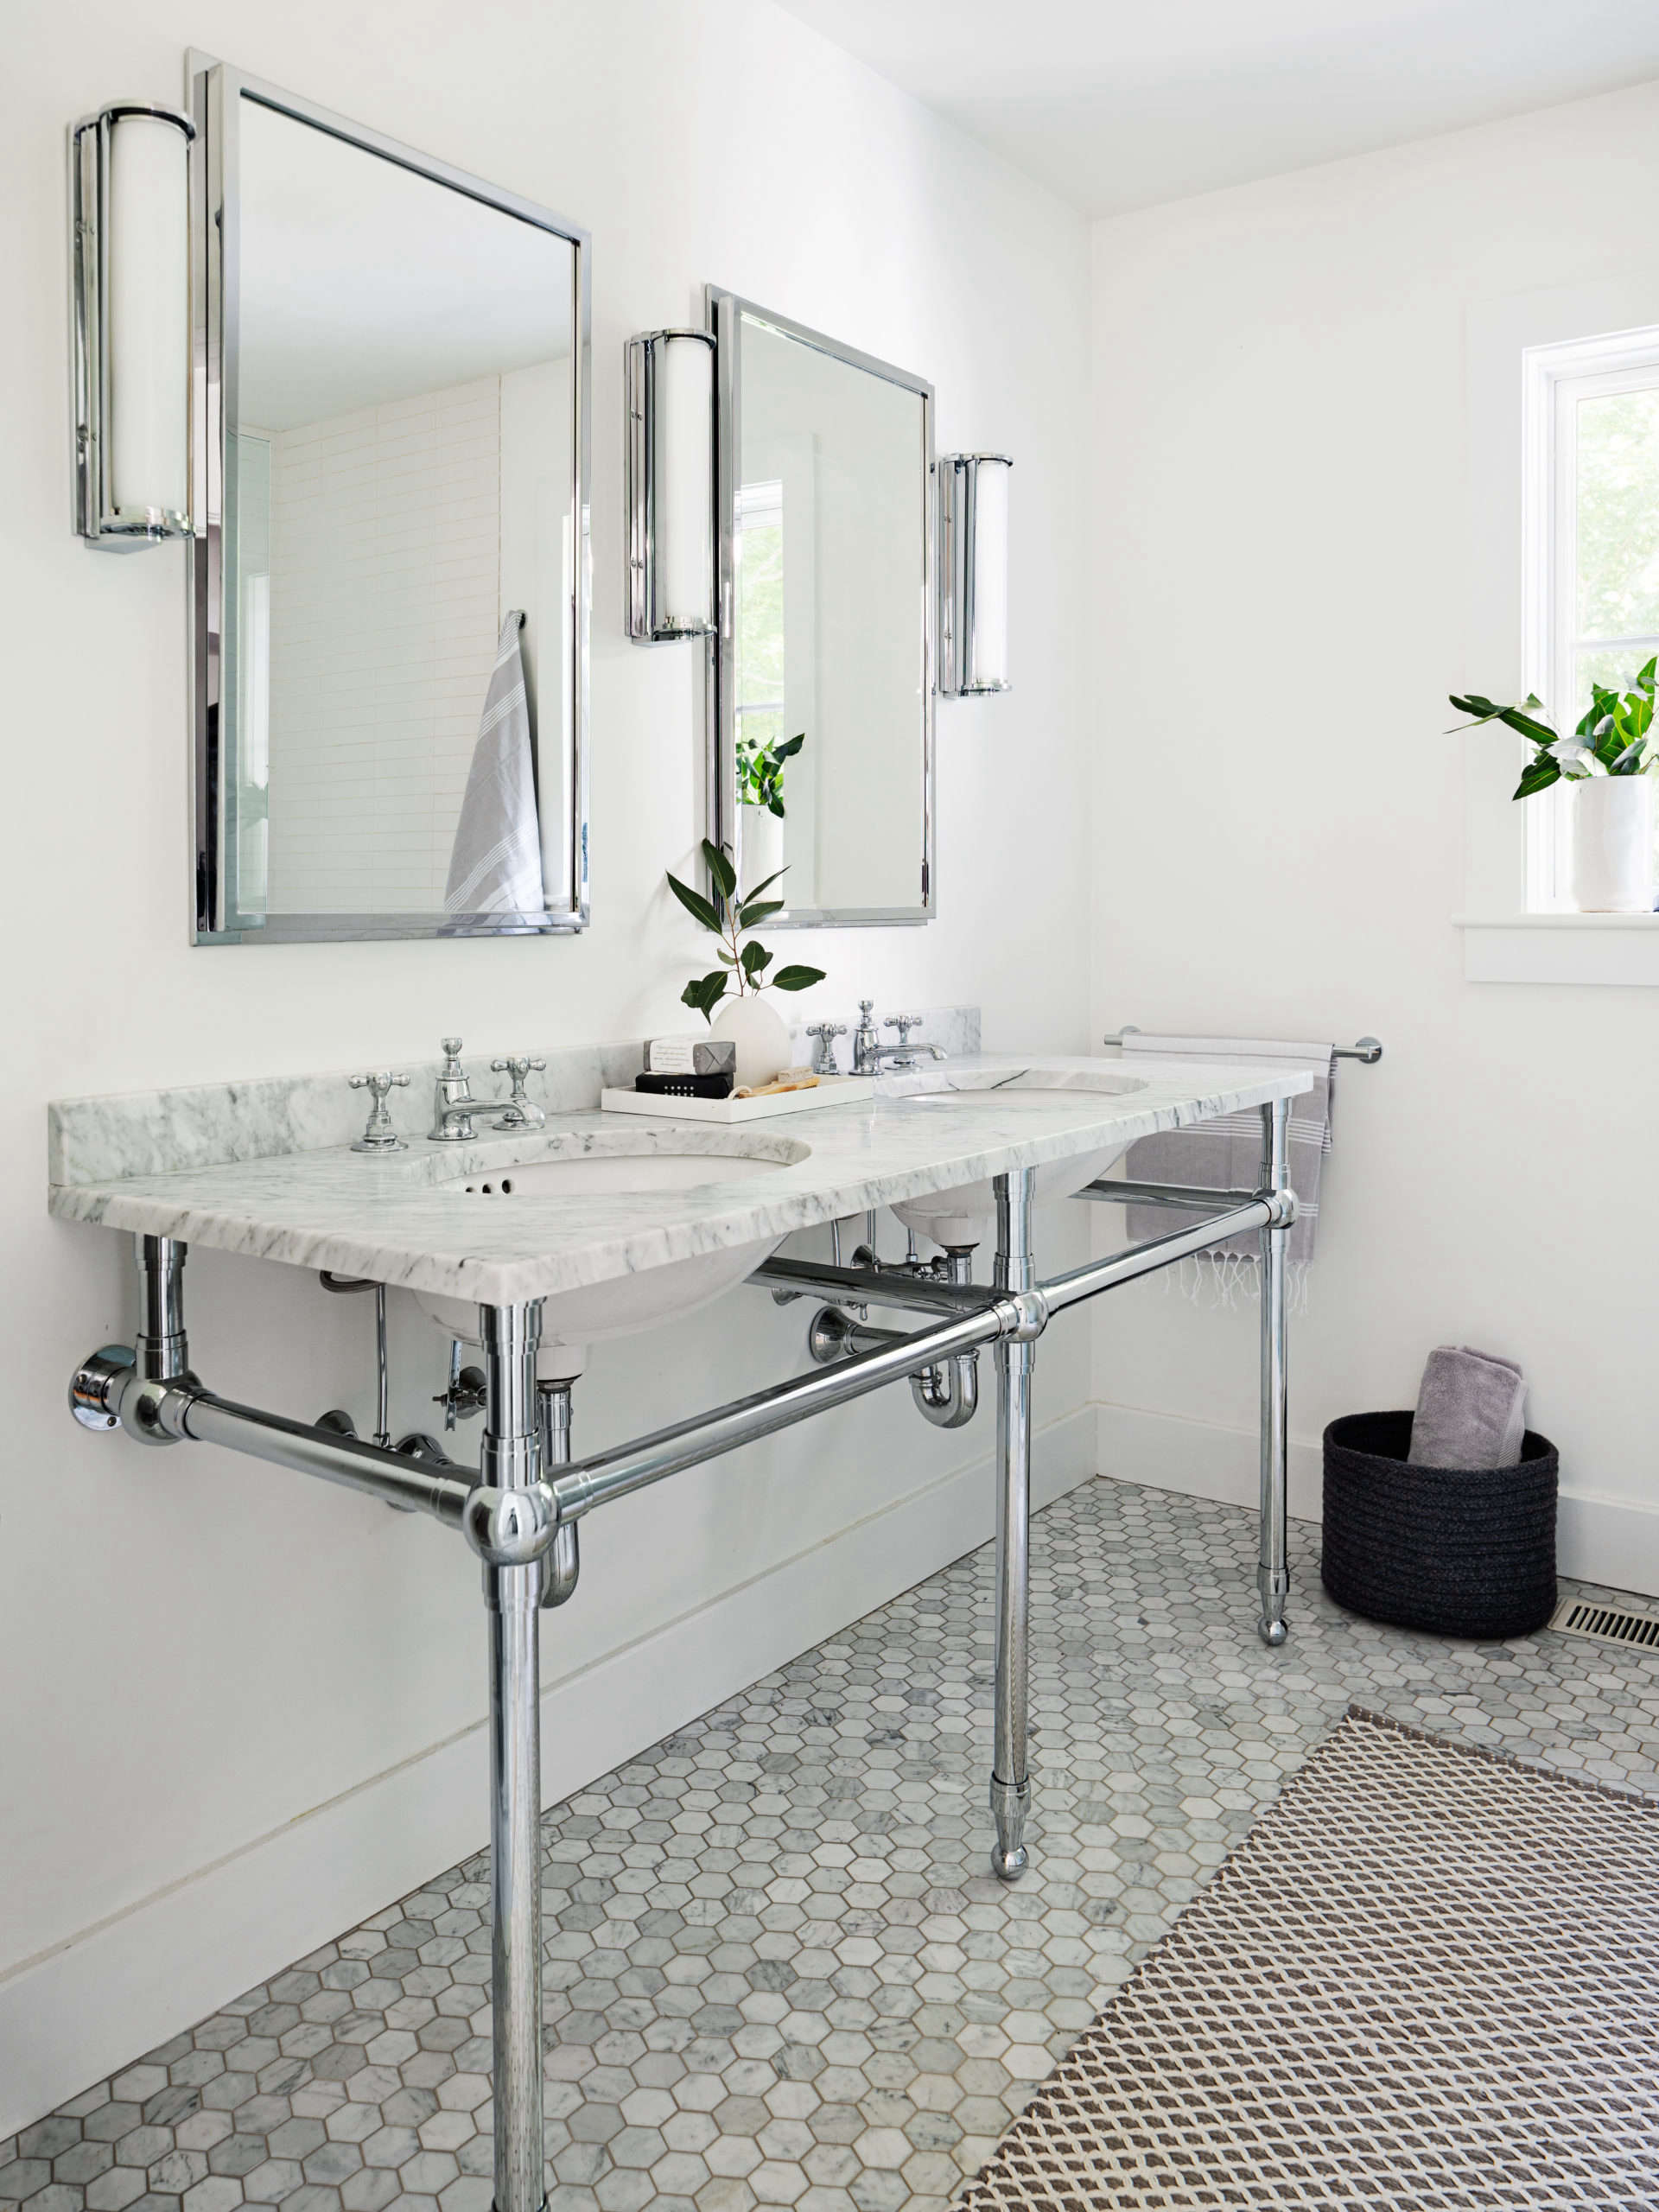 The mine-and-yours washstand is the Gramercy from Restoration Hardware with Waterworks faucets. The hexagonal marble floor tiles are from Nemo Tile.